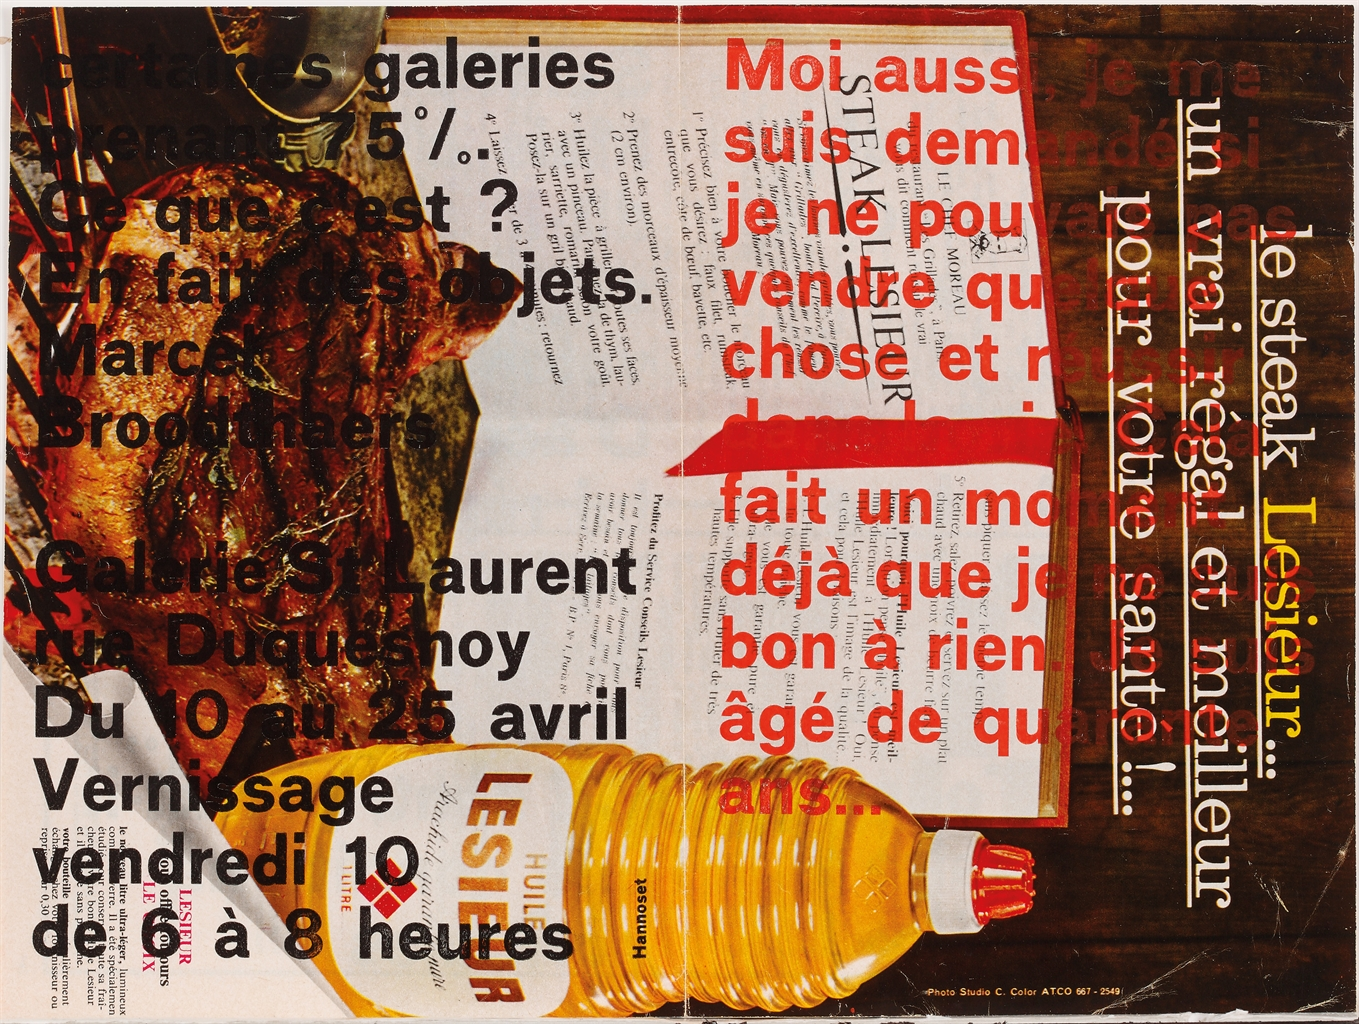 Marcel Broodthaers-Moi aussi, je me suis demande si je ne pouvais pas vendre quelque chose... (I, too, wondered whether I could not sell something...)-1964